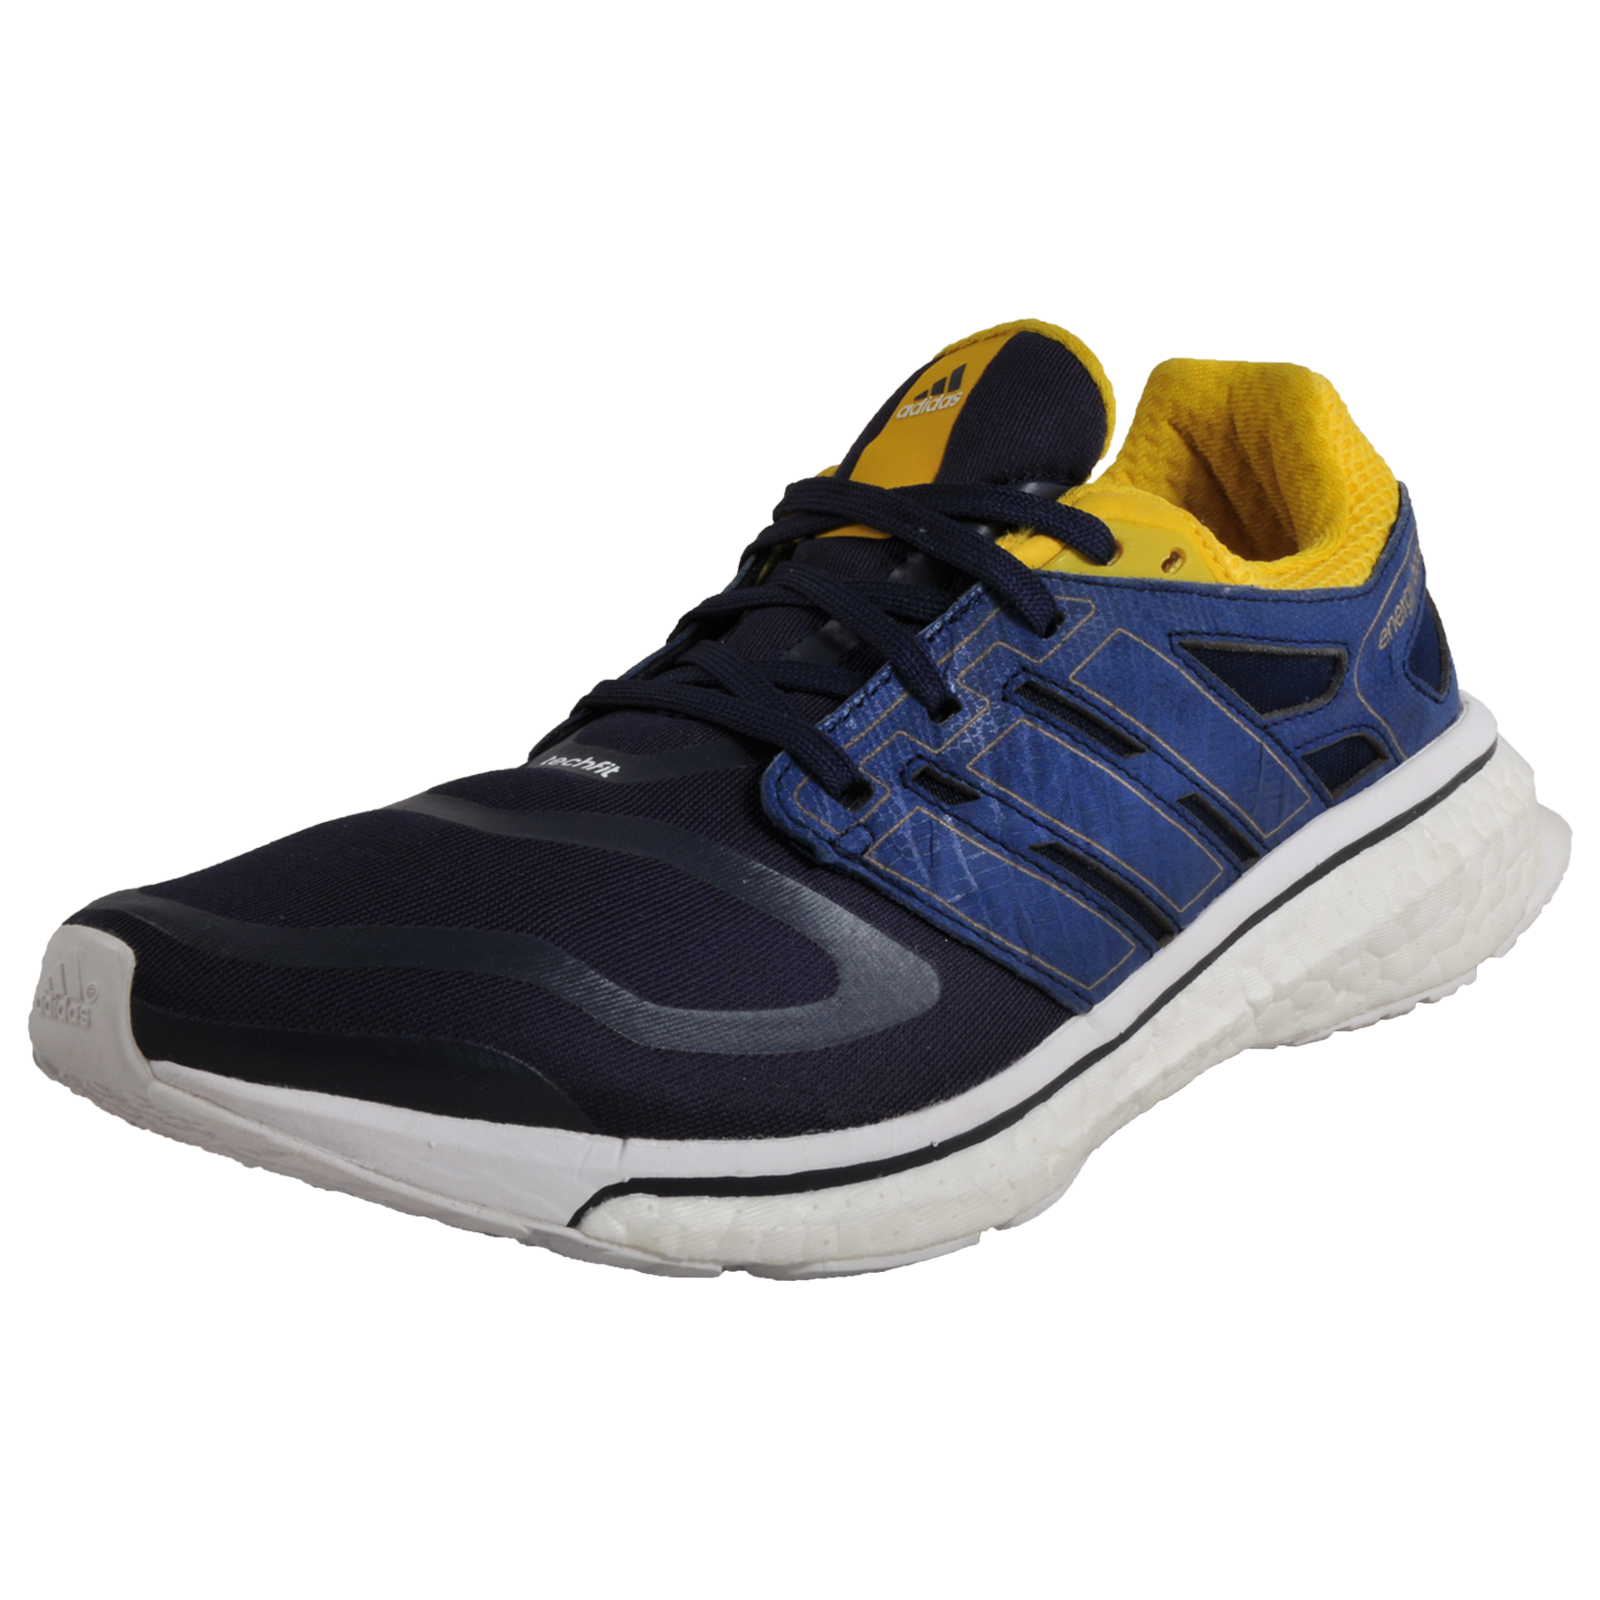 089025c10f7e3 Details about Adidas Energy Boost Techfit Mens Premium Running Shoes Gym  Trainers Navy